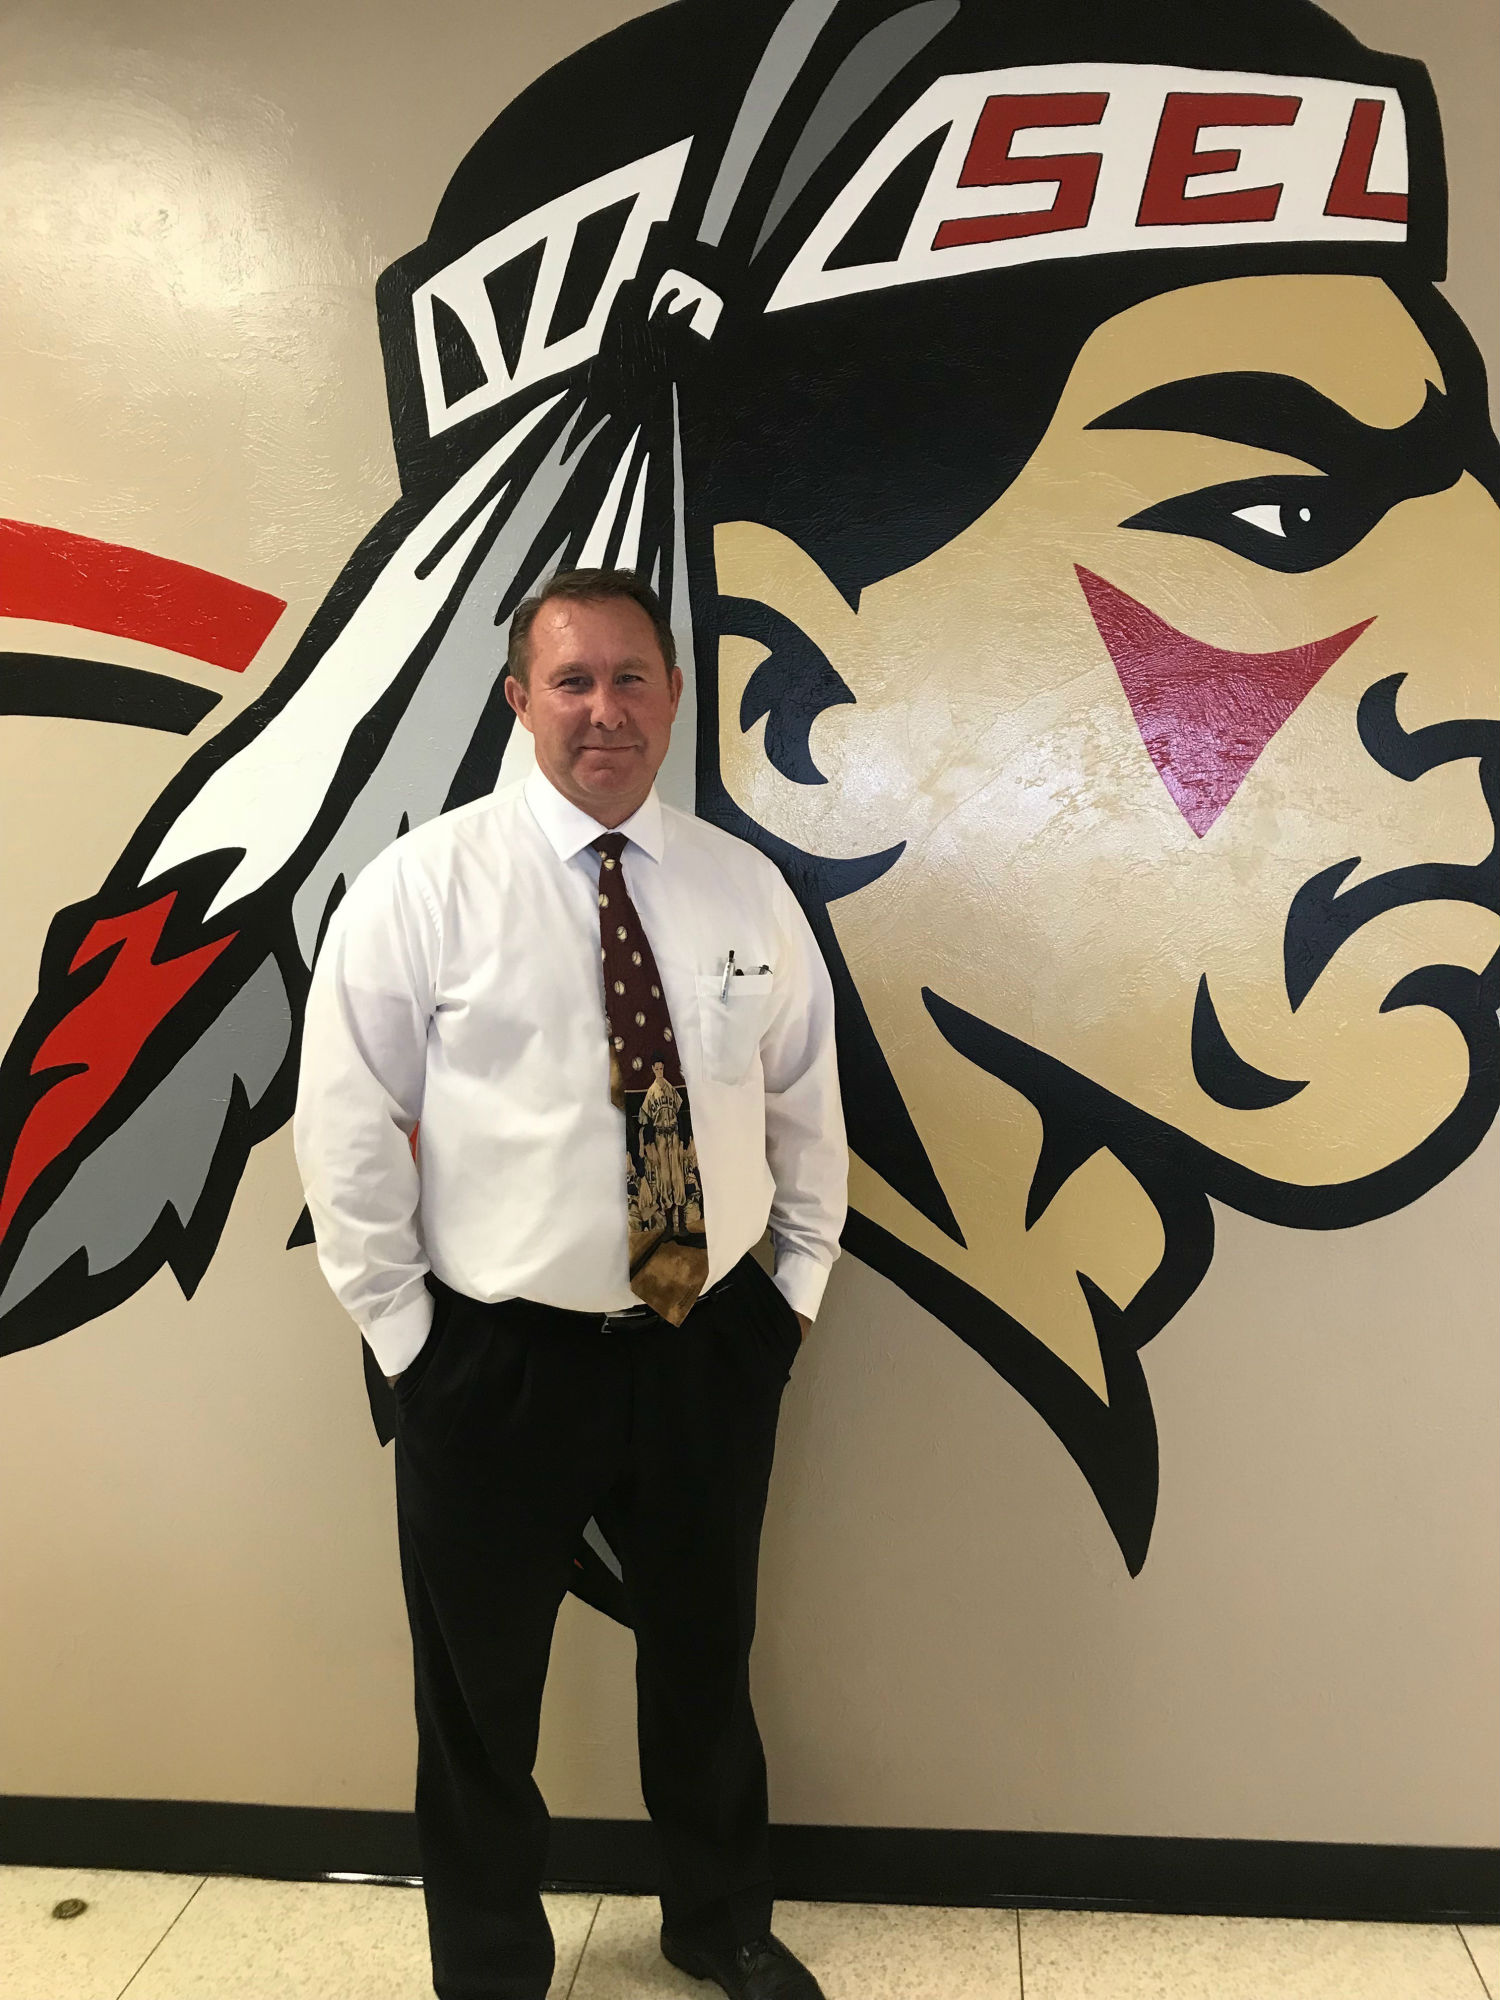 A photo of Principal Dennis Thompson in front of a school mascot mural